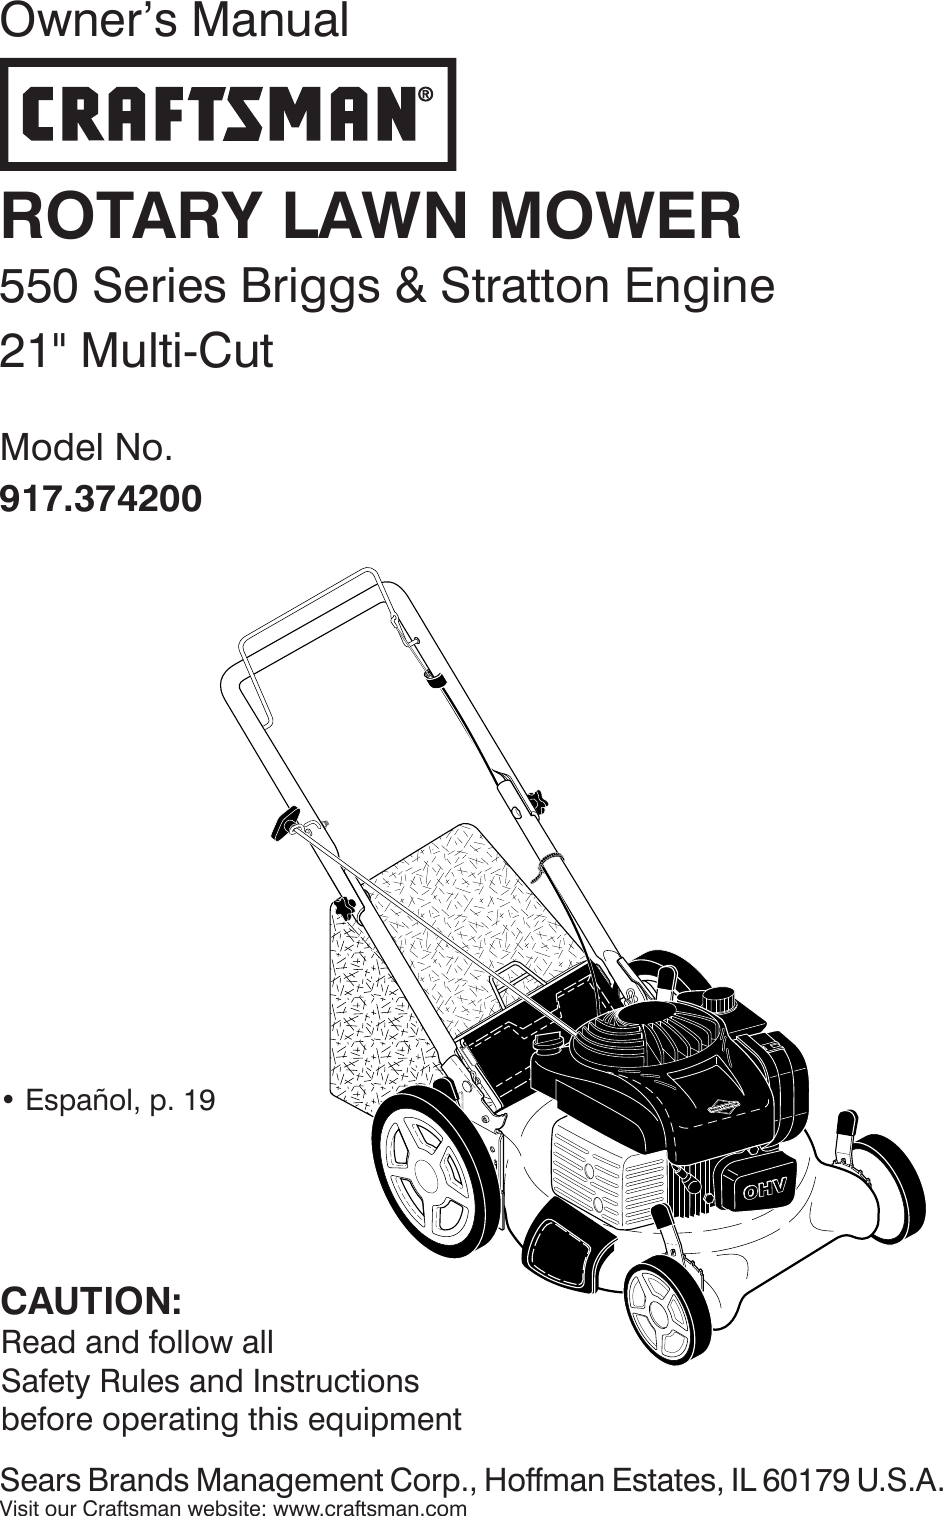 Craftsman 917374200 374200 es 115870296_r0 User Manual